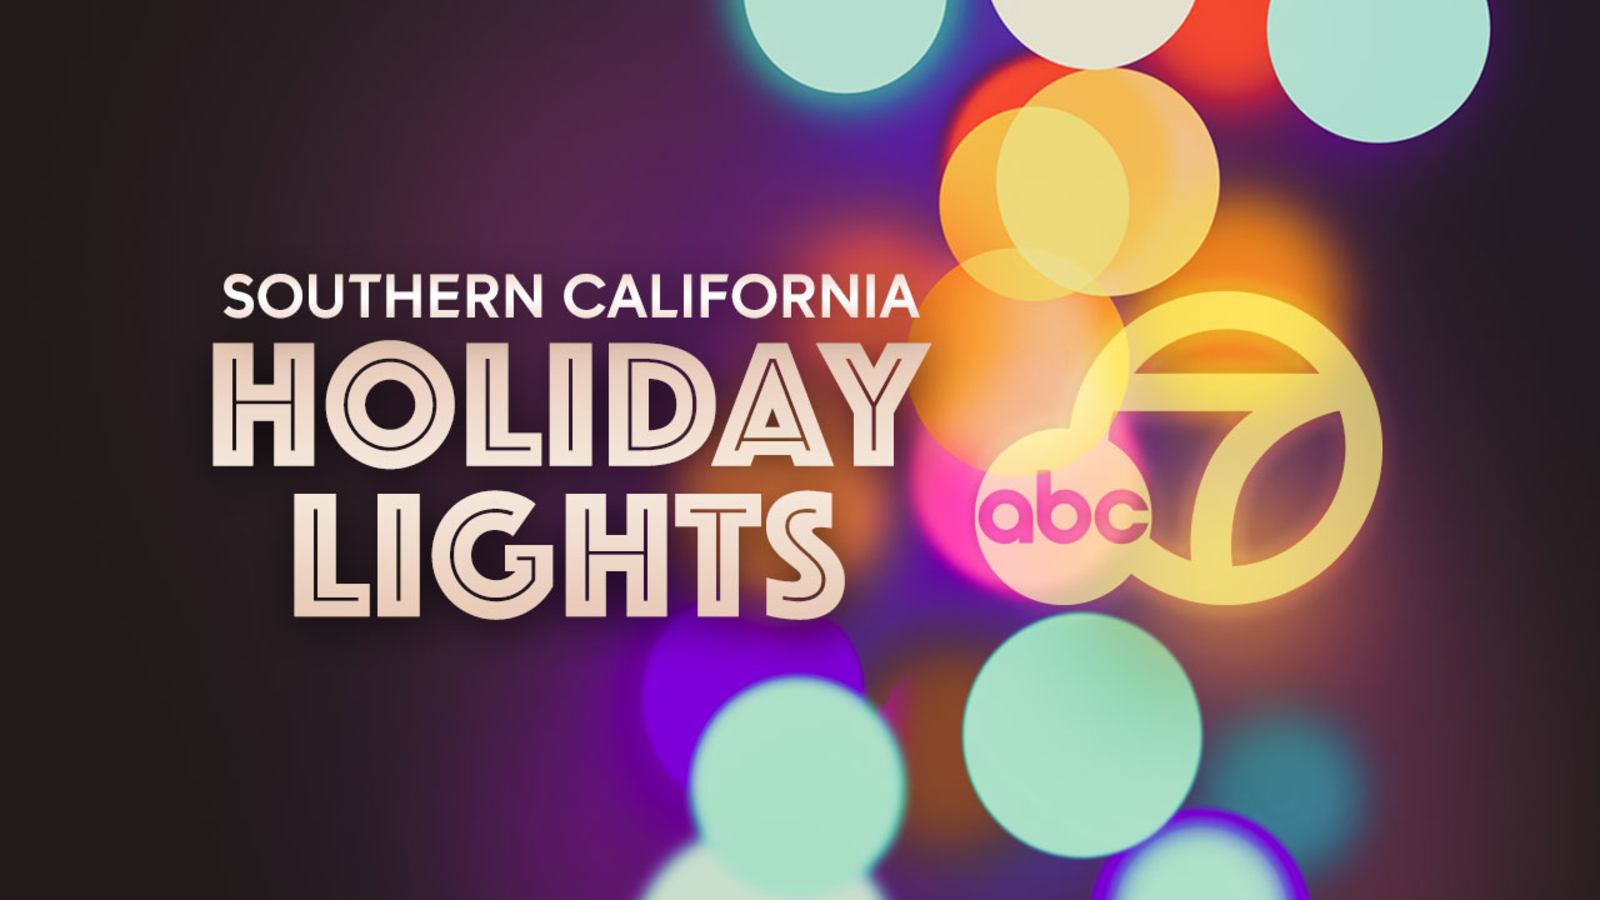 Holiday Light Displays In Southern California Abc7 Com